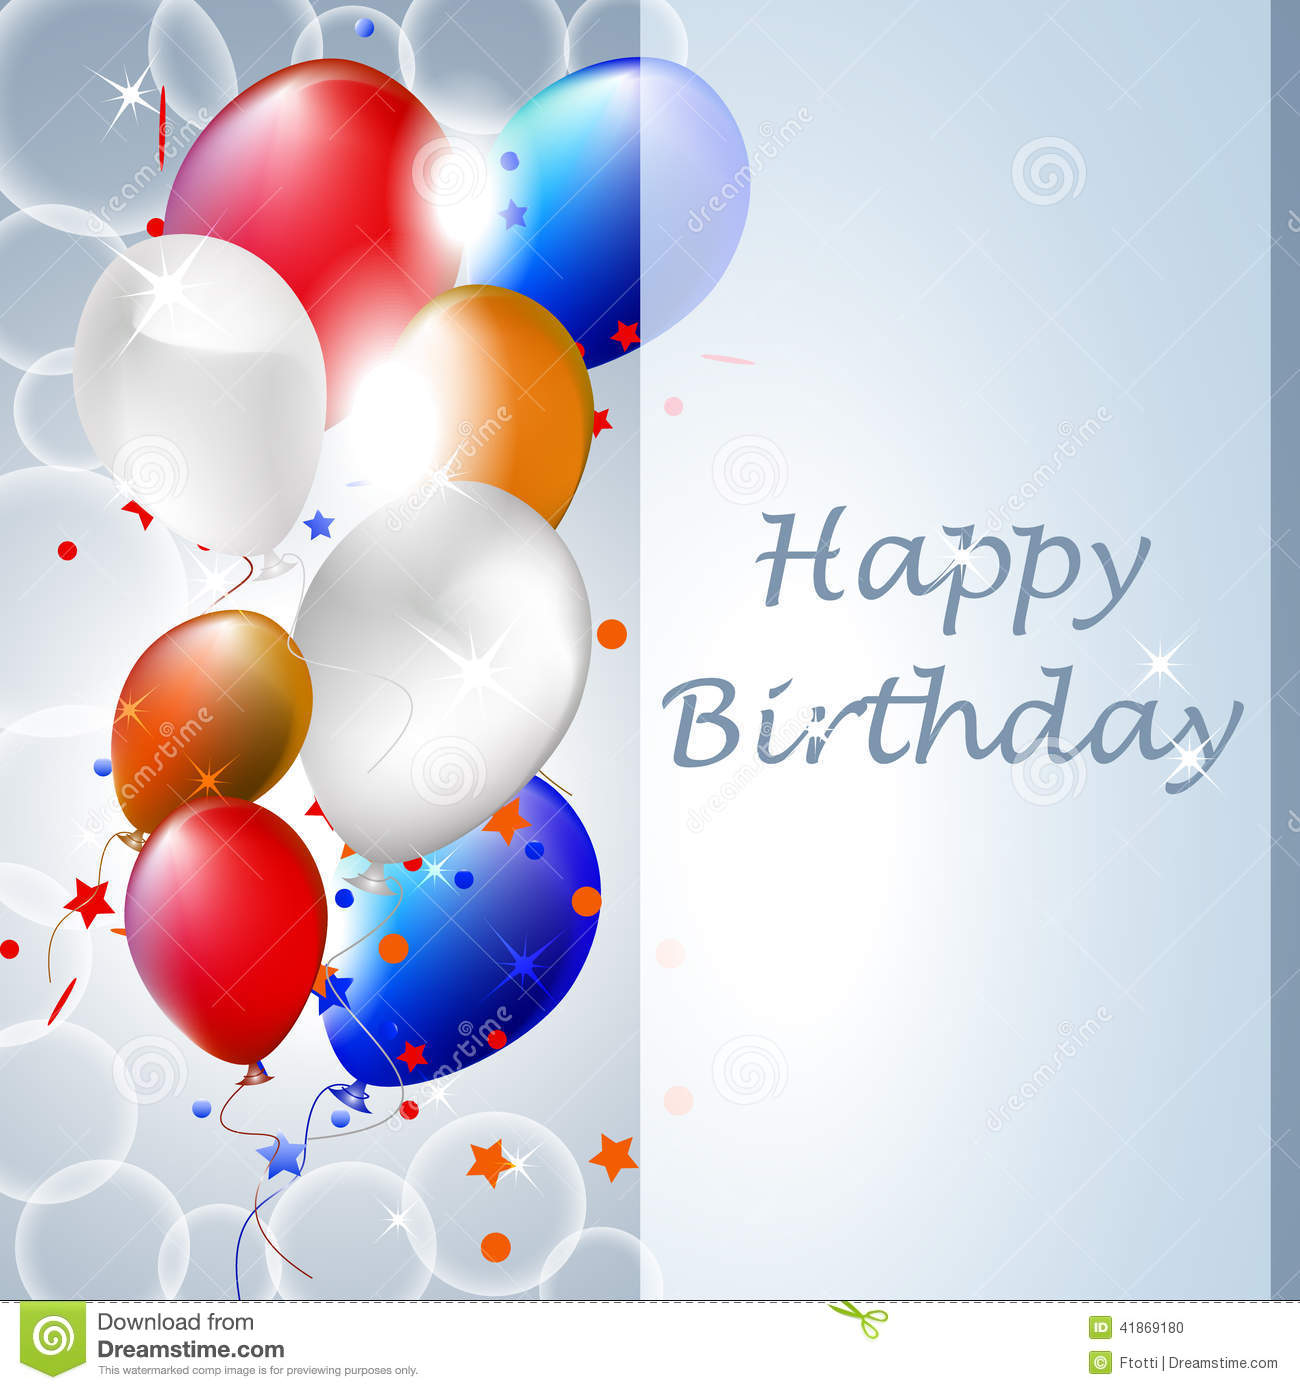 B day poster designs - Poster Background Birthday Poster Background Happy Birthday Illustration With Balloons On The Background Design